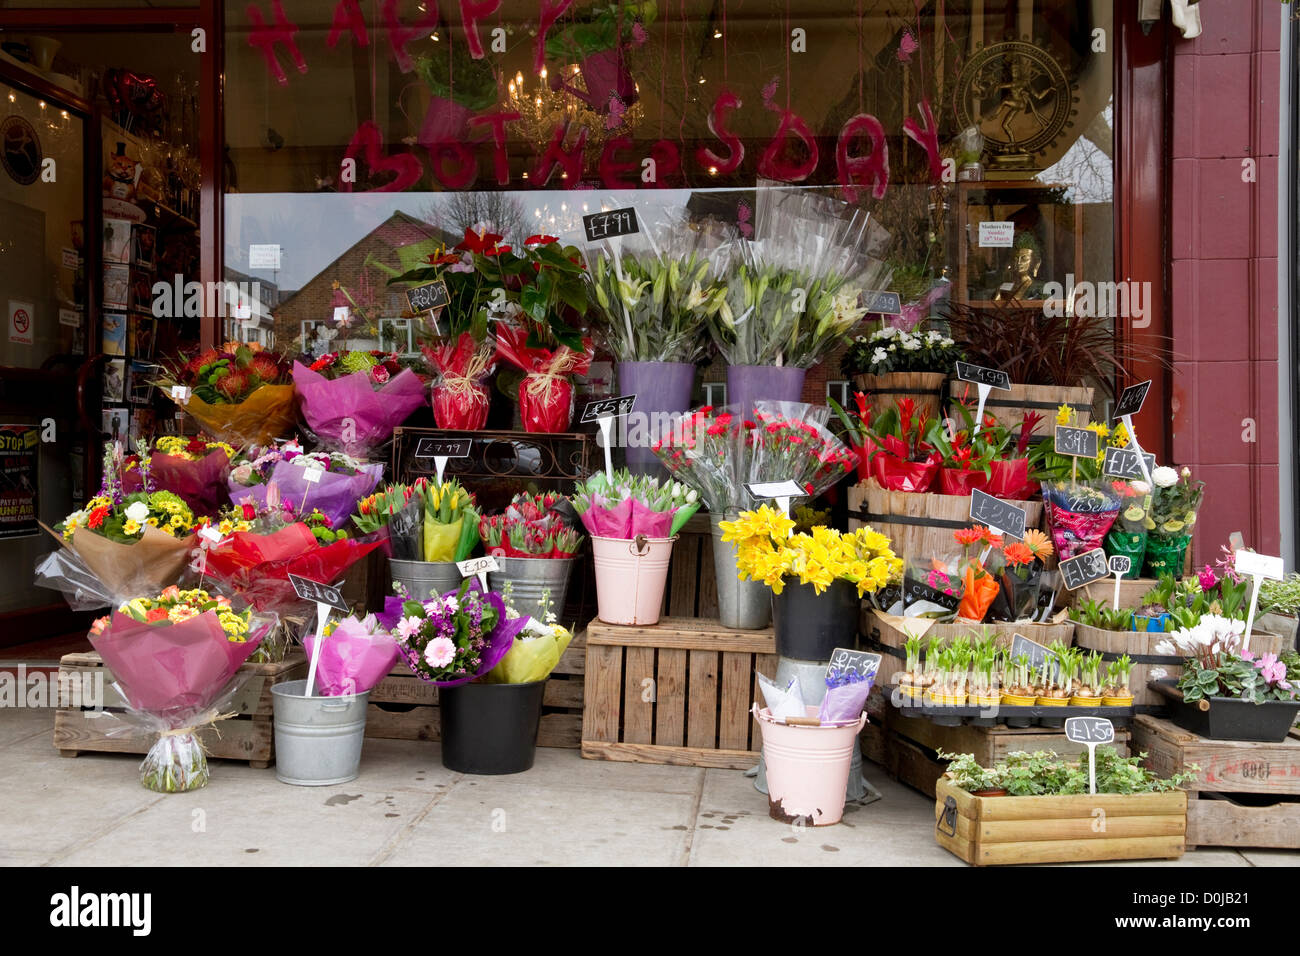 A display of flowers and potted plants for Mother's Day. - Stock Image